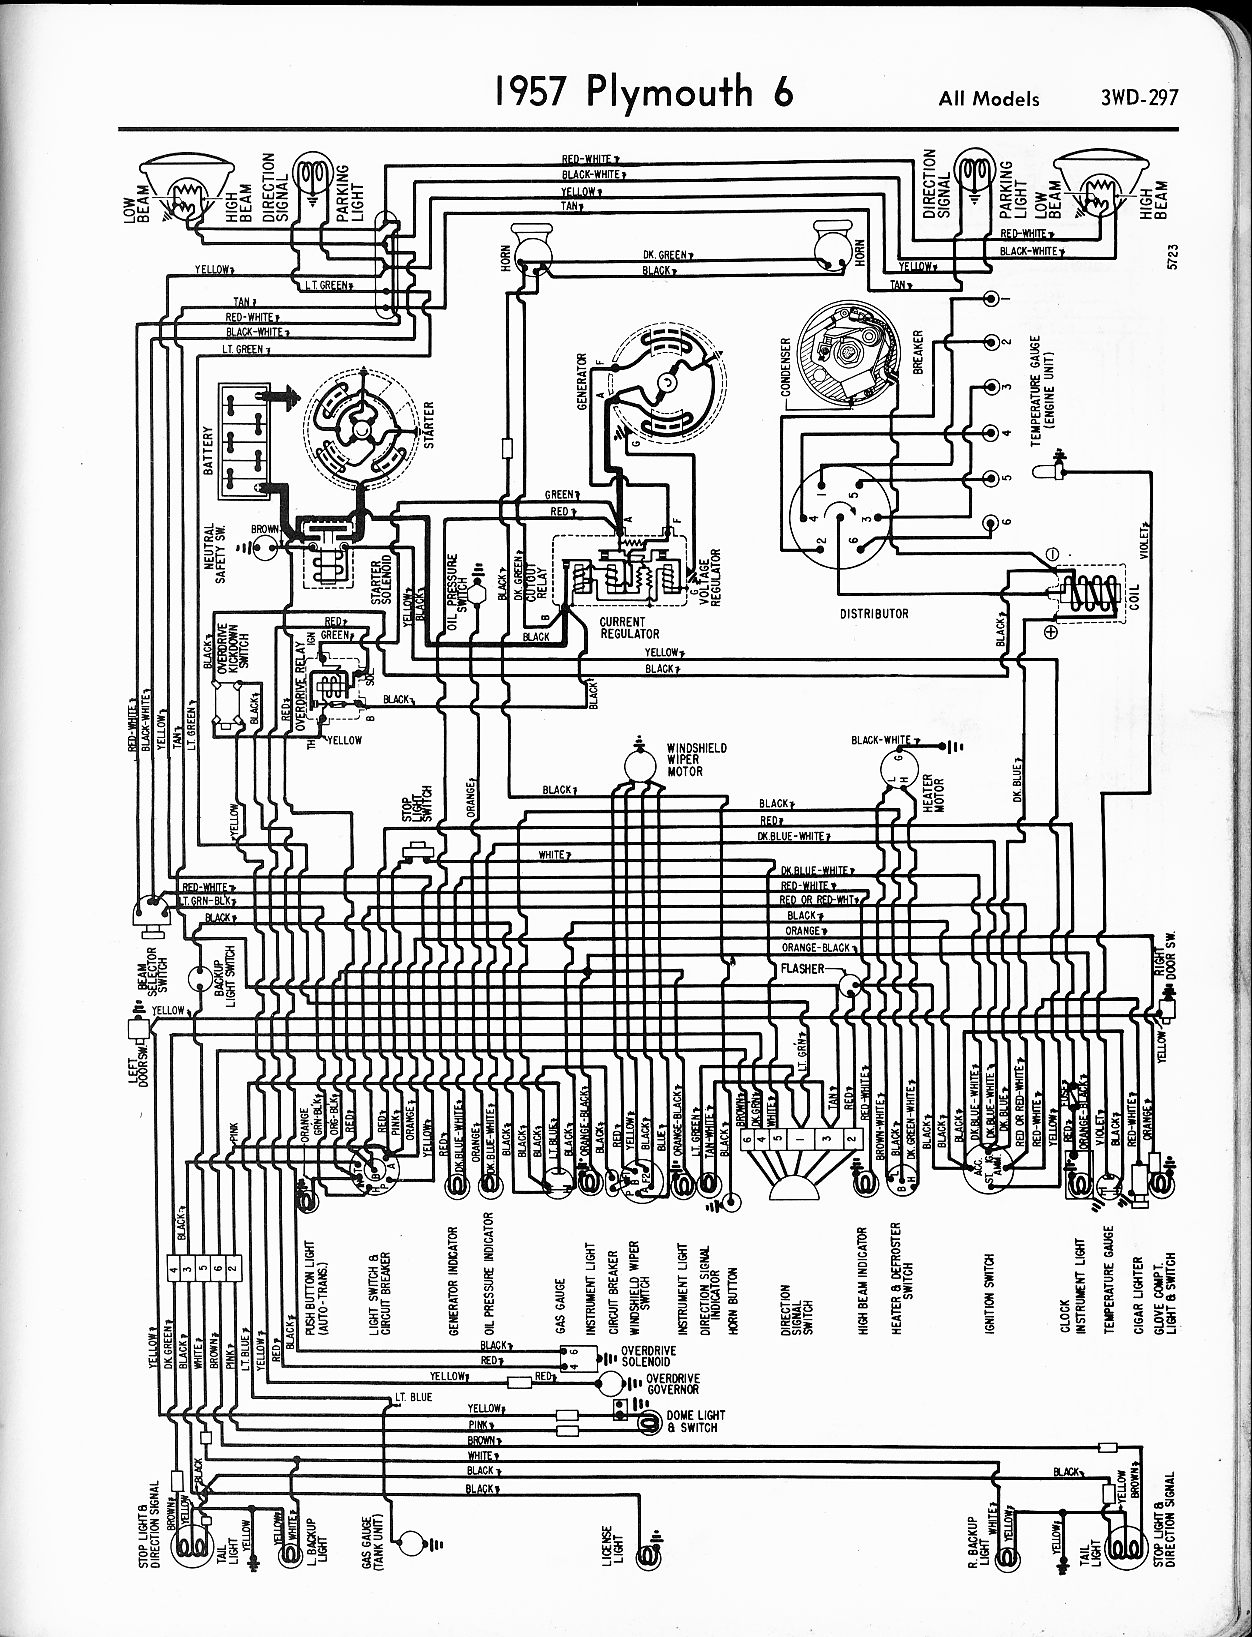 1966 Plymouth Wiring Diagram Get Free Image About, 1966